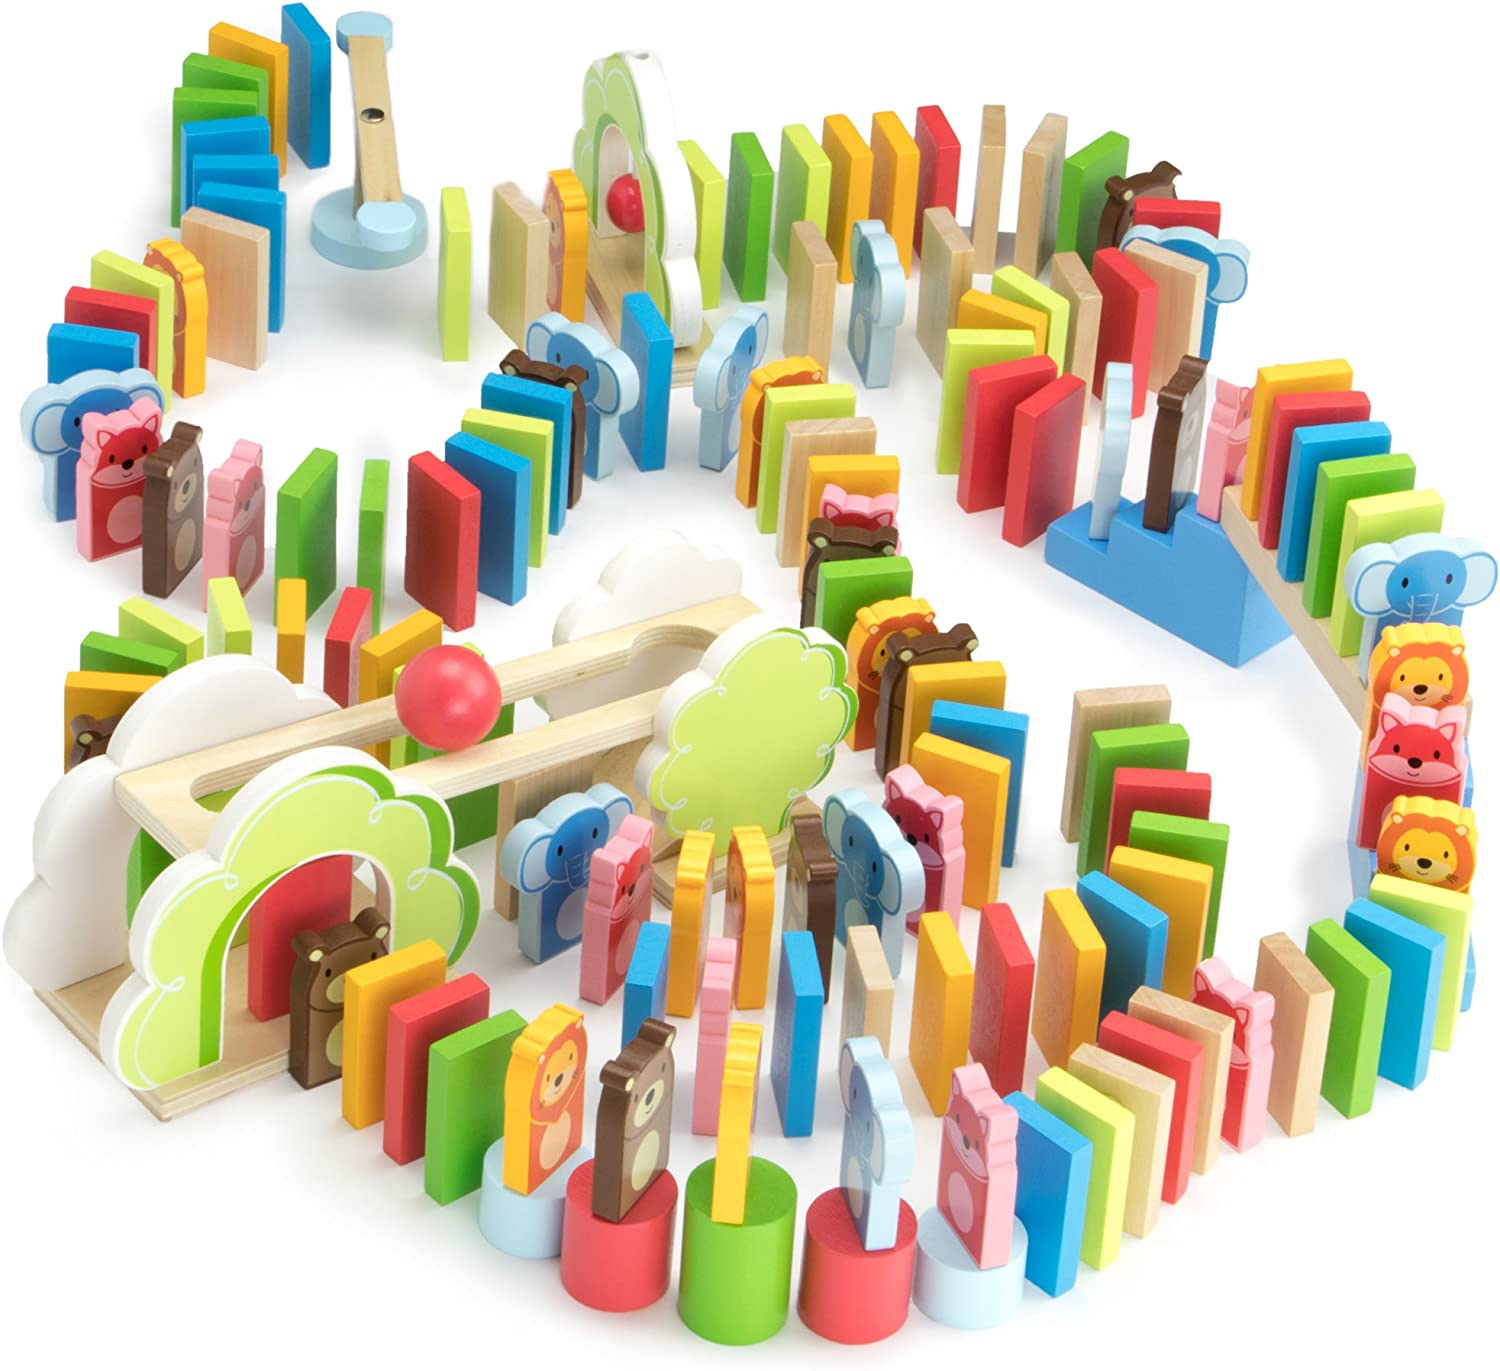 Imagination Generation Zoo Animals Domino Rally Adventure Kids Playset, with 4 Animal Shapes, 5 Stunts, & Carrying Case (144 Pieces)